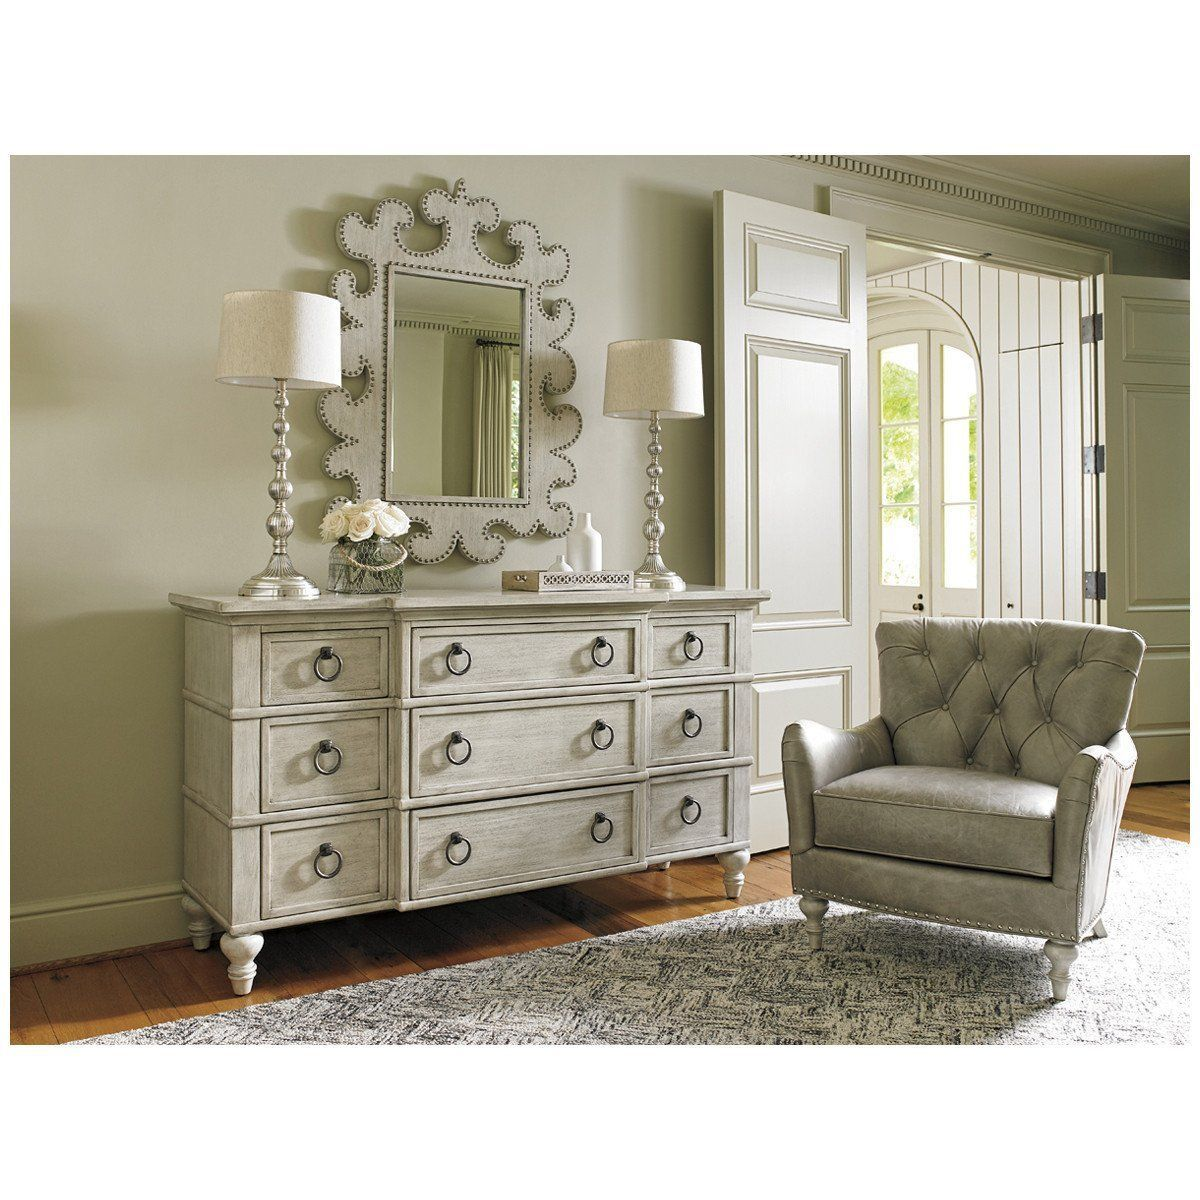 Lexington Oyster Bay Wescott Leather Chair Dresser with